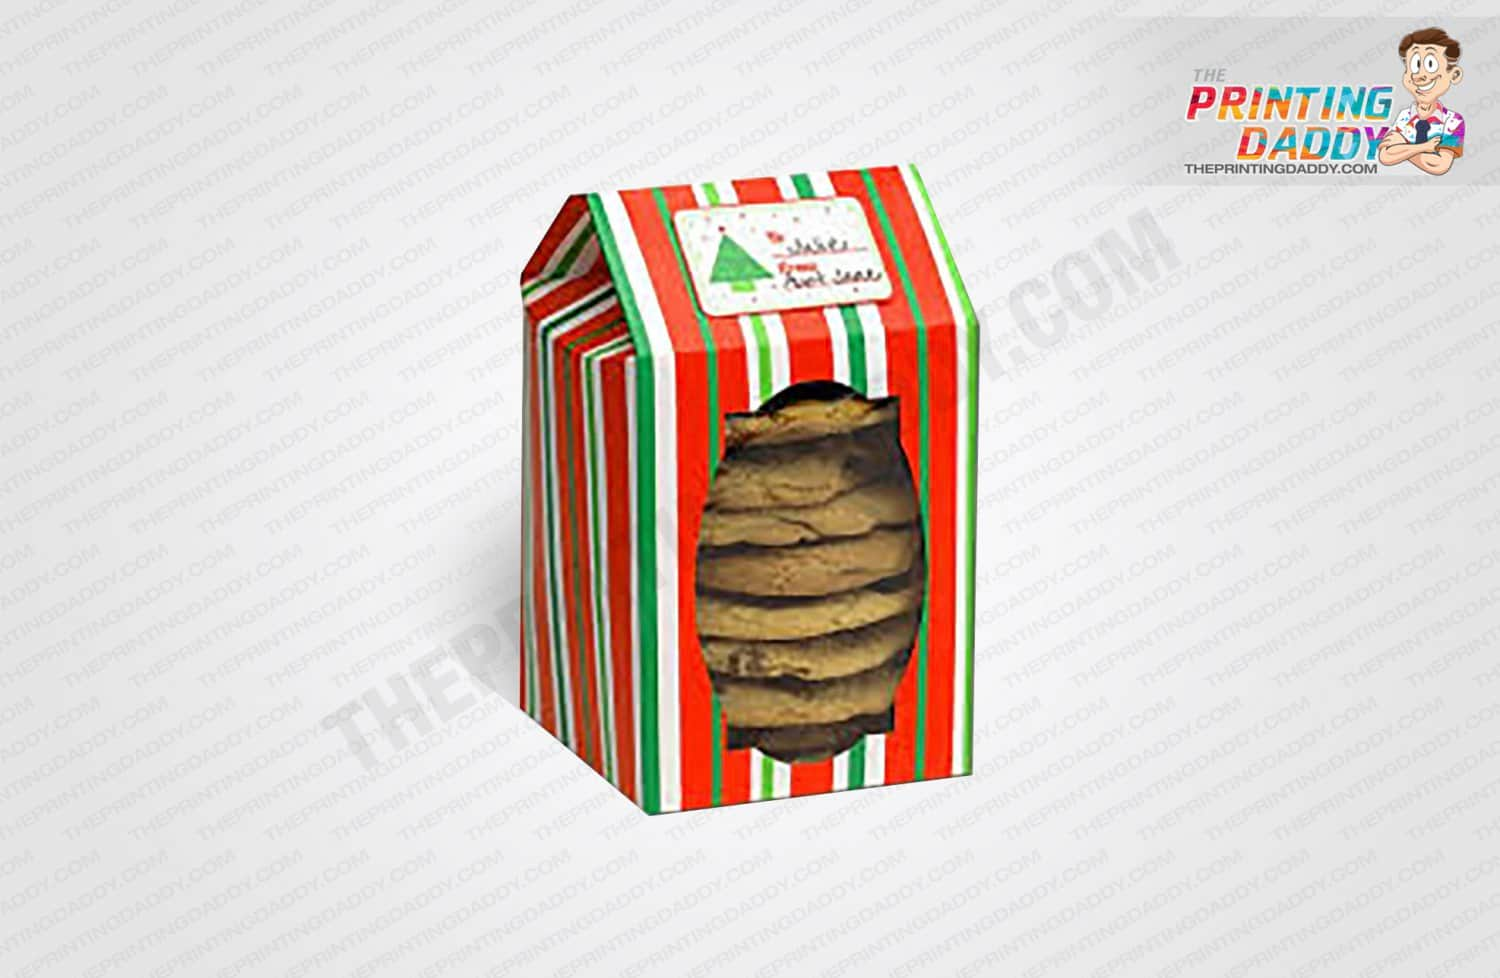 Custom Cookies Boxes The Printing Daddy